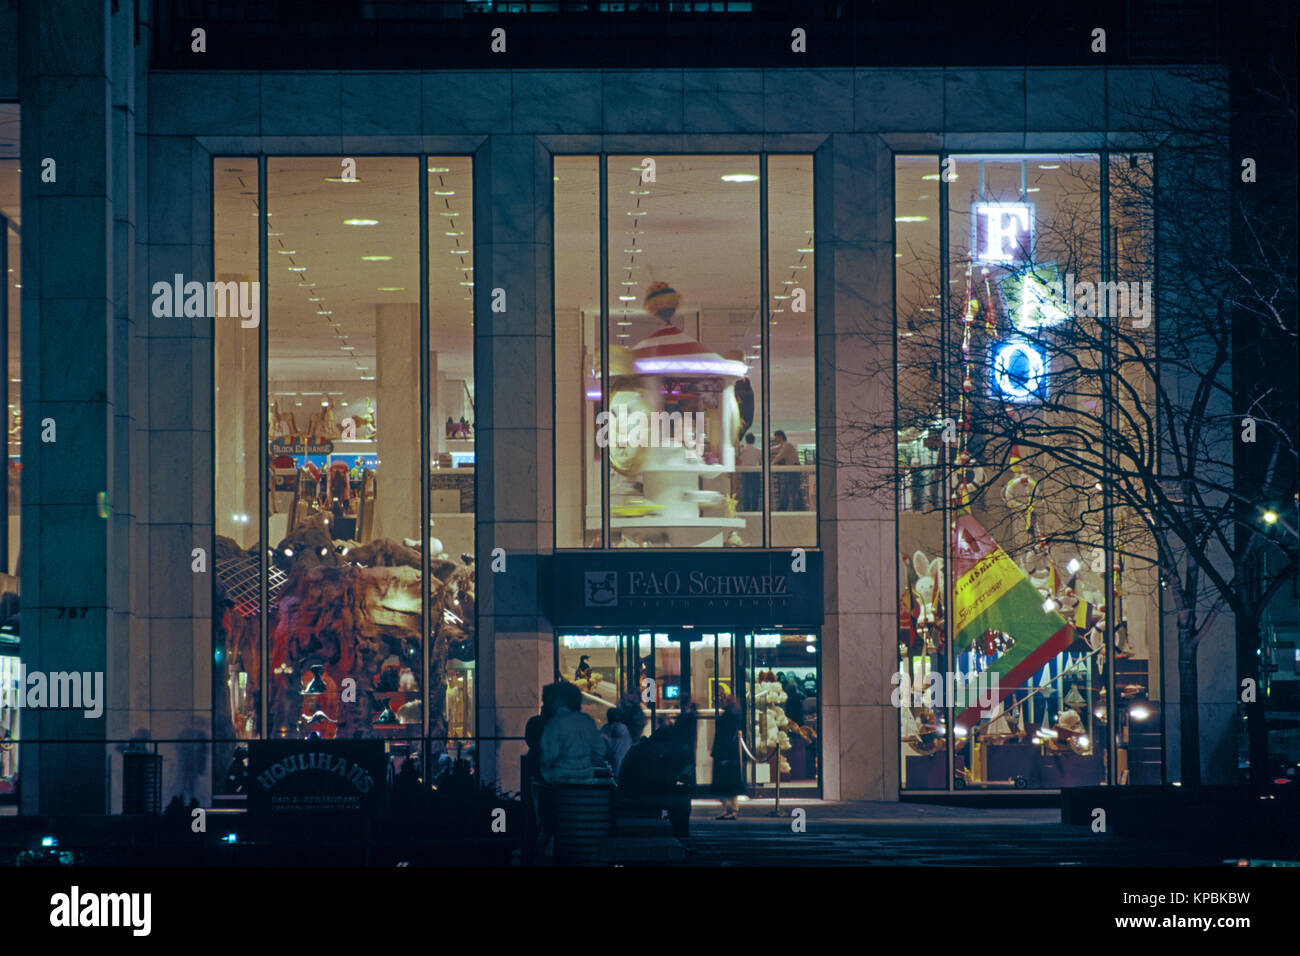 1987 HISTORICAL FOA SCHWARZ TOY STORE FIFTH AVENUE MANHATTAN NEW YORK CITY USA - Stock Image